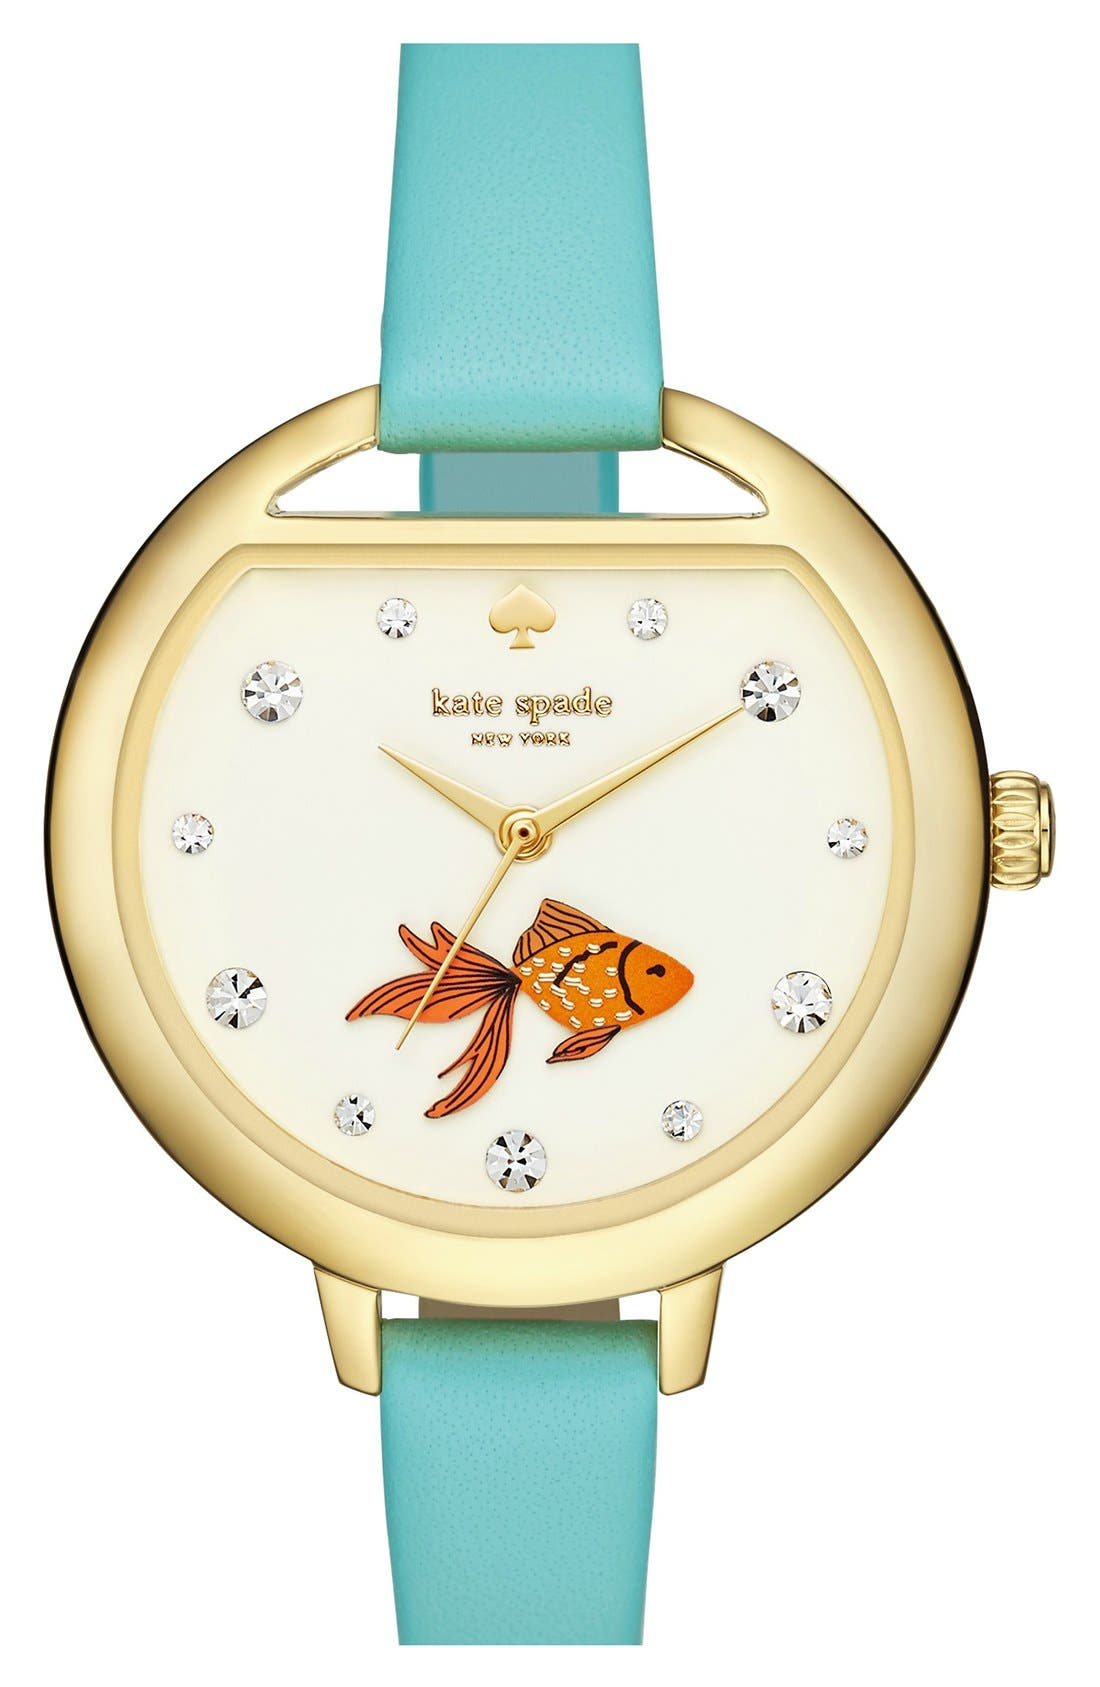 Main Image - kate spade new york 'metro - fishbowl' leather strap watch, 34mm